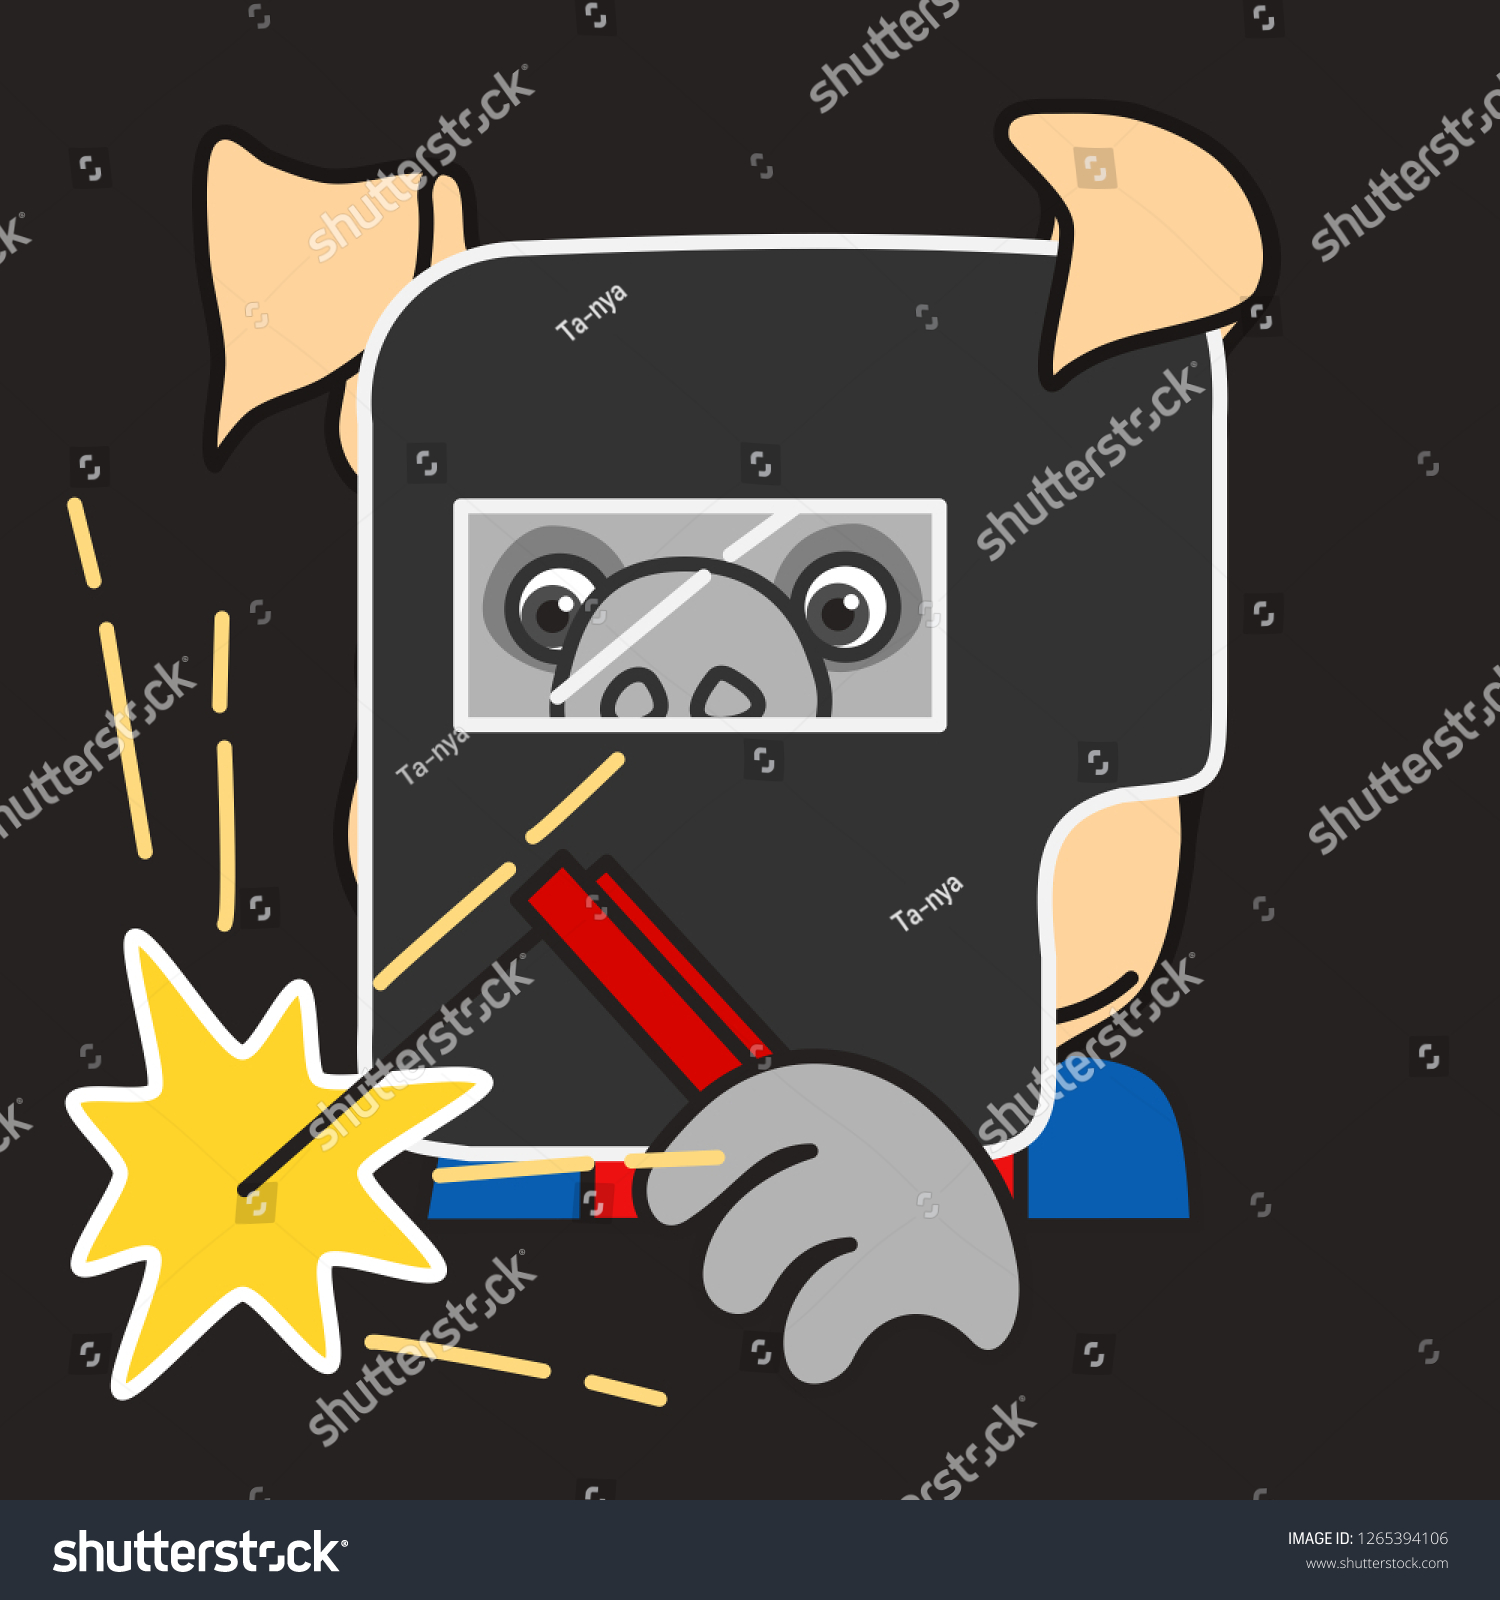 hight resolution of emoticon or emoji of welder fat pig man at work that is wearing a safety mask holding an electrode while welding some metal with electrical flash sparks